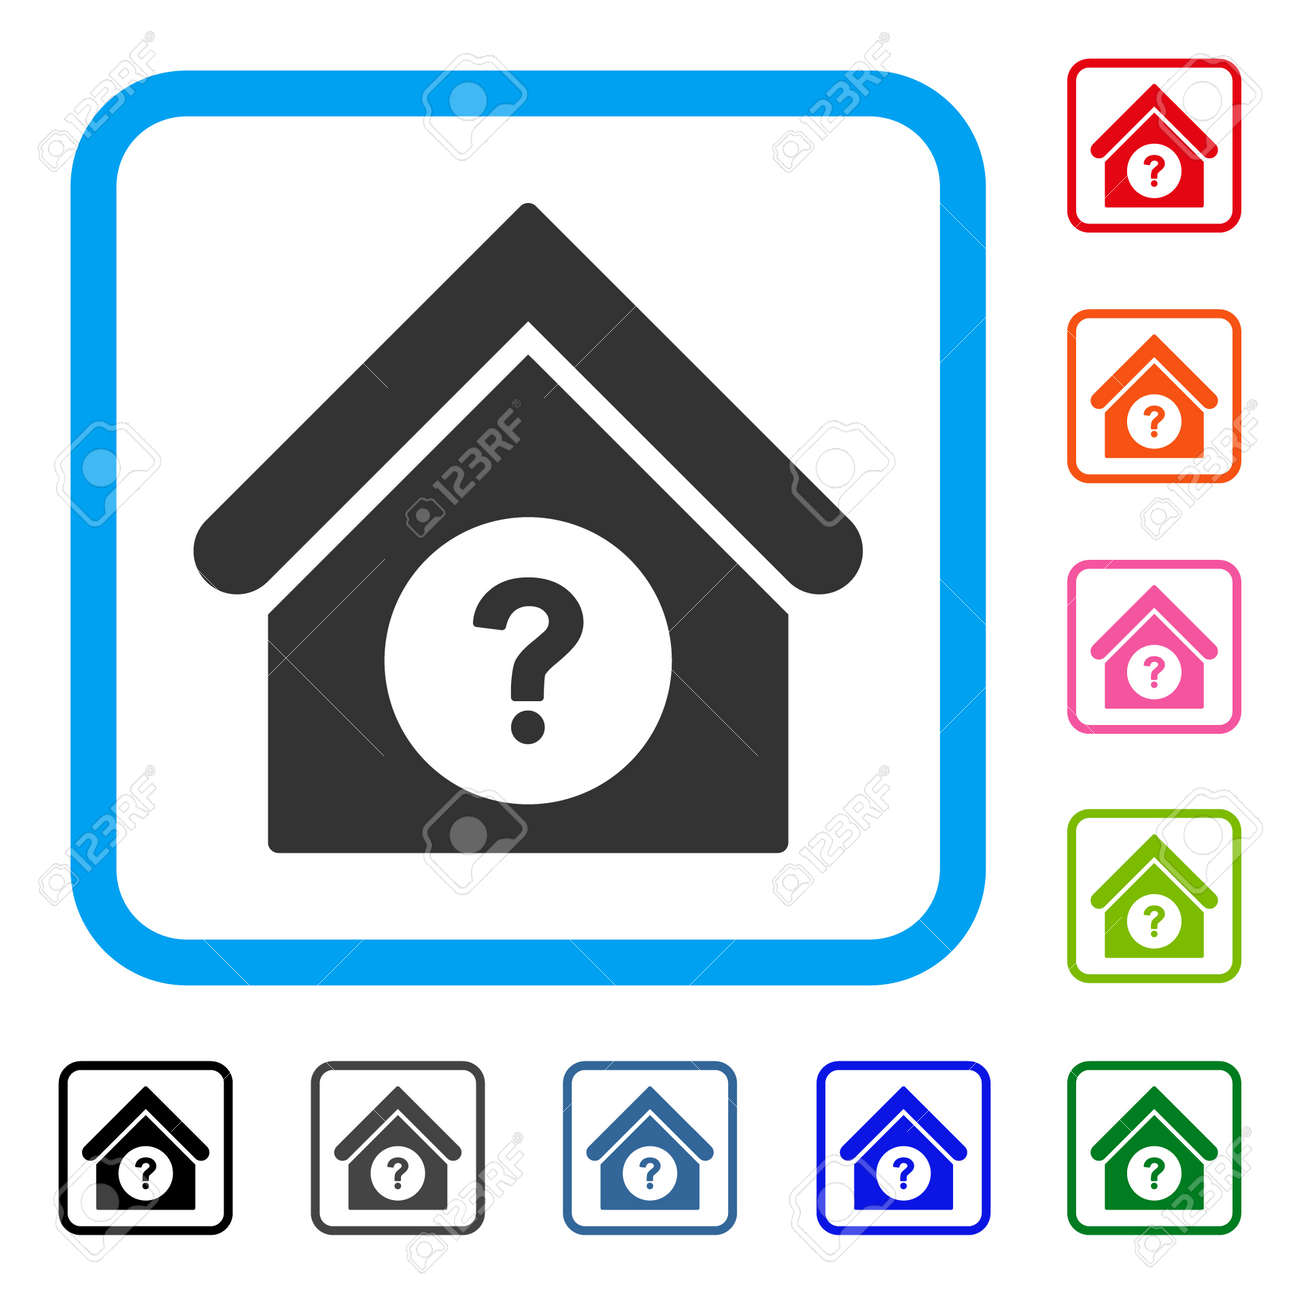 Status Building Icon Flat Gray Pictogram Symbol In A Blue Rounded